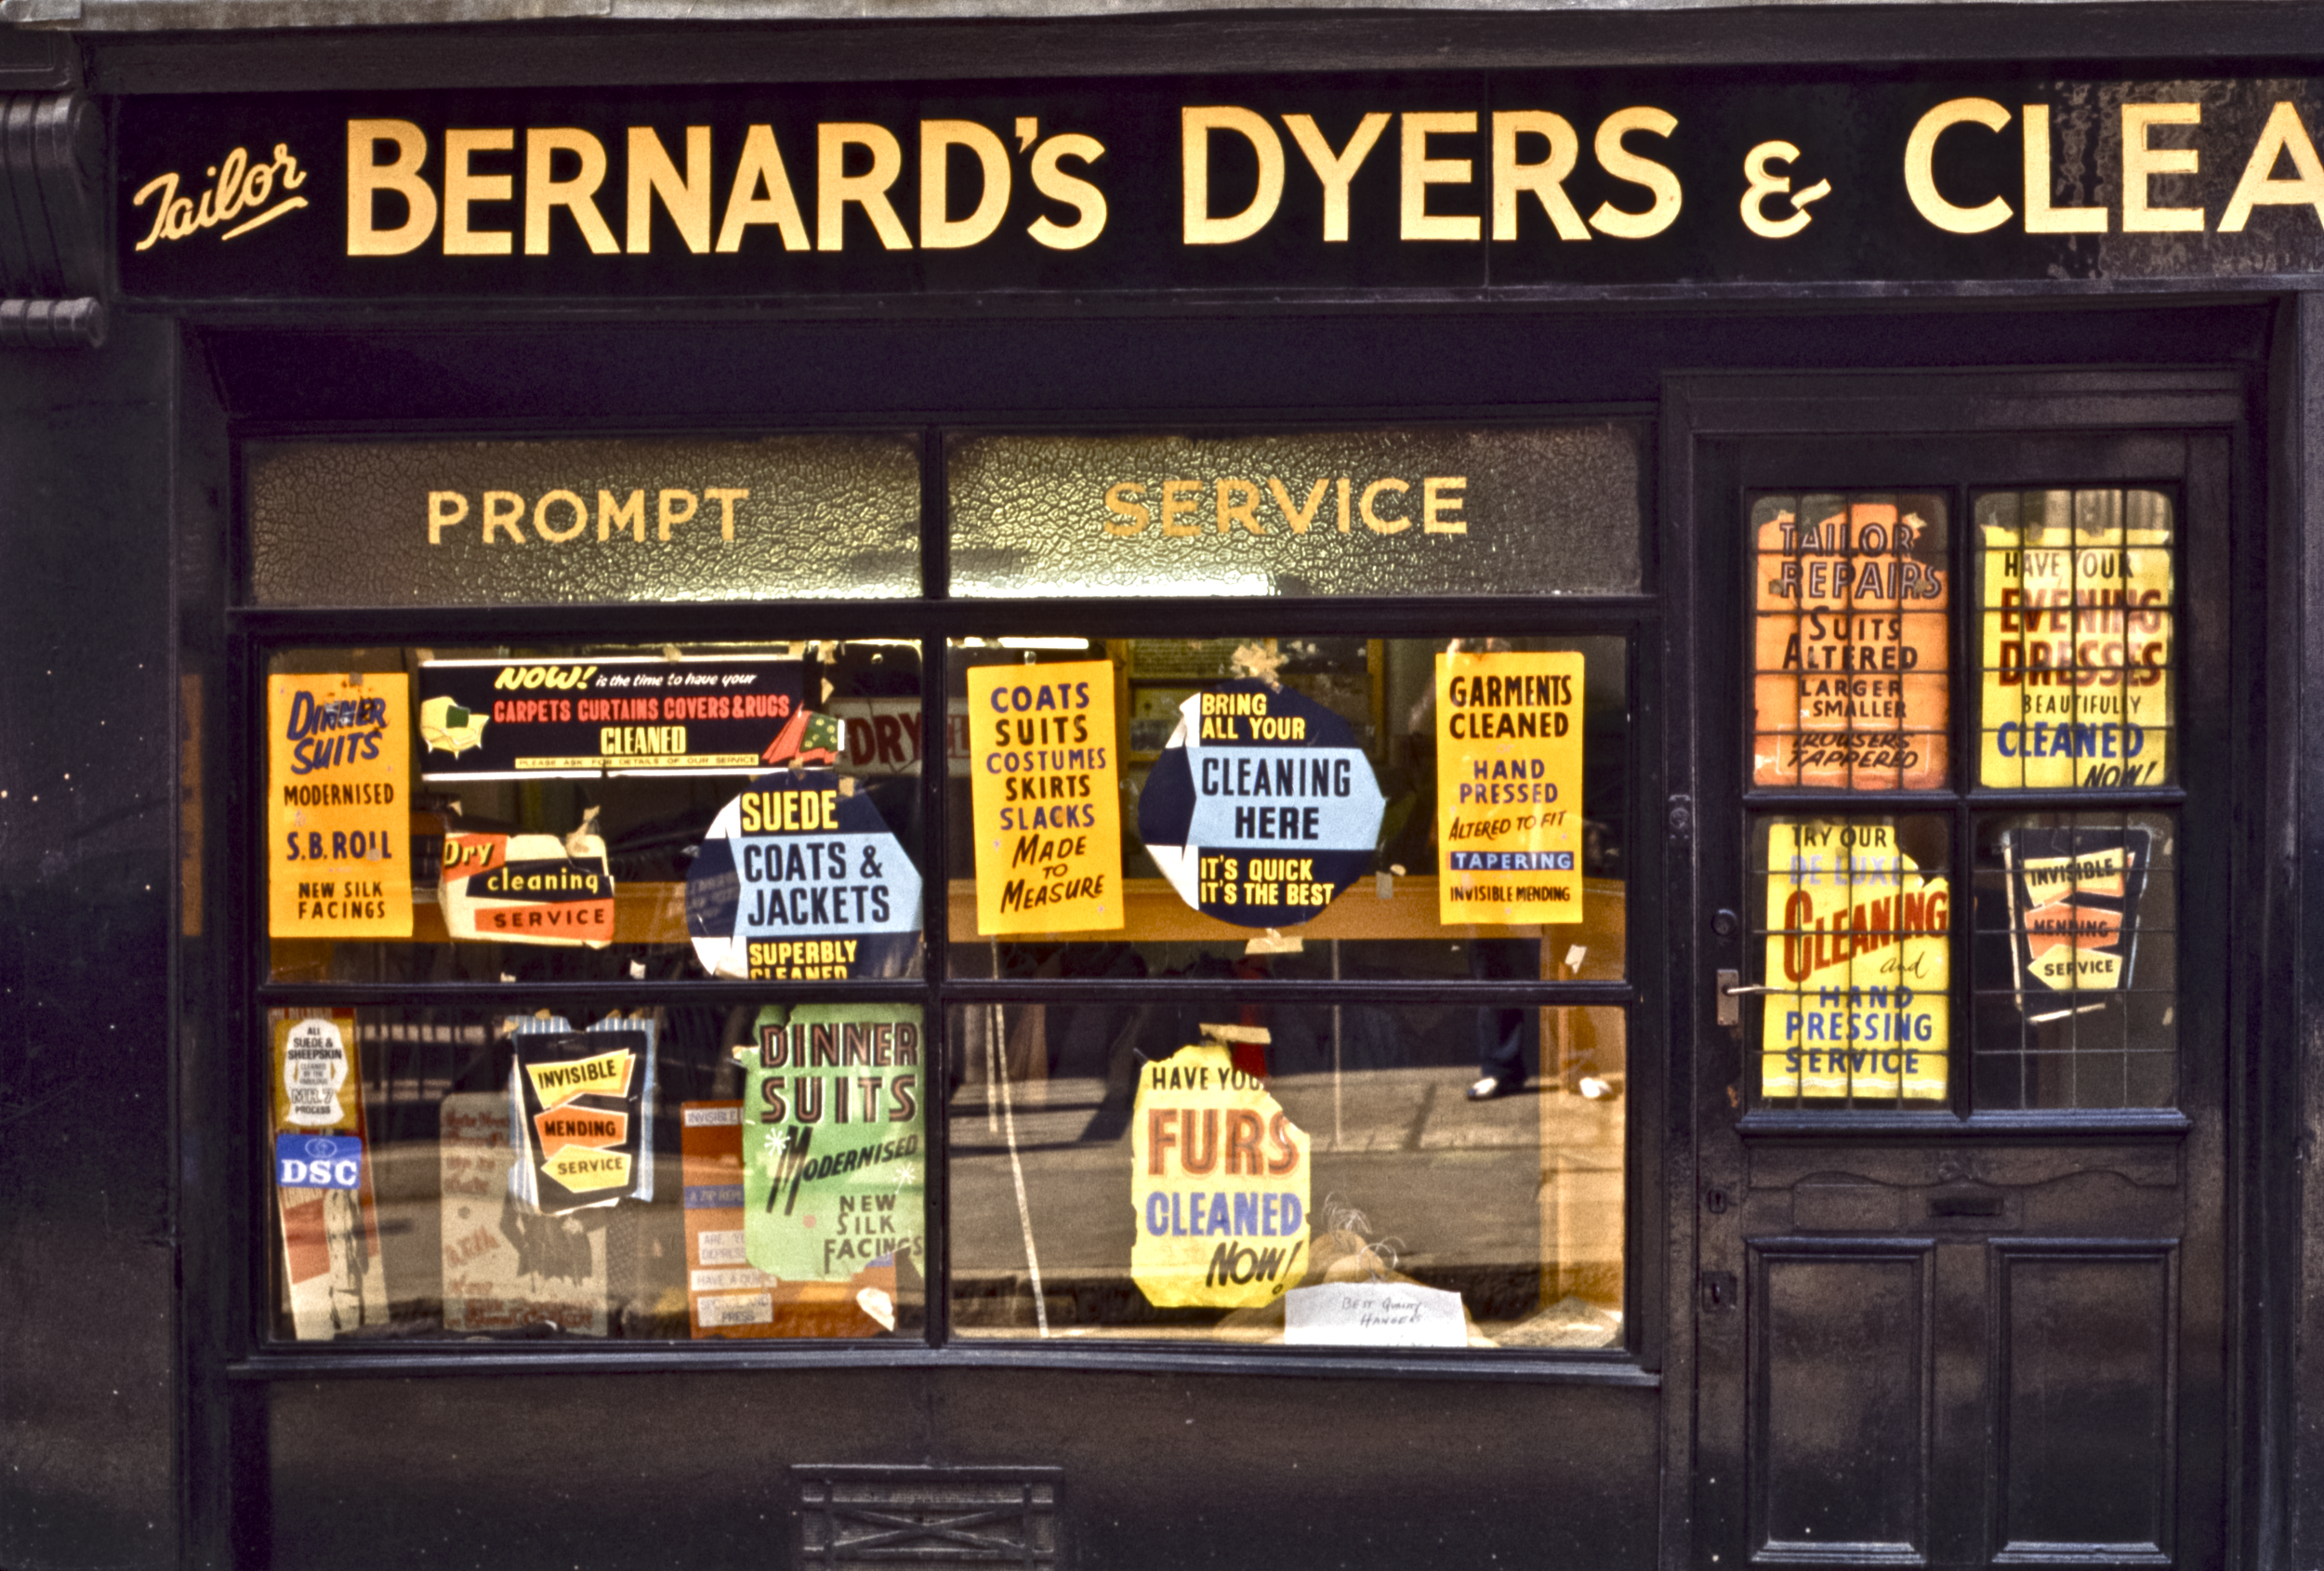 Soho Bernard's Dyers, London 1971